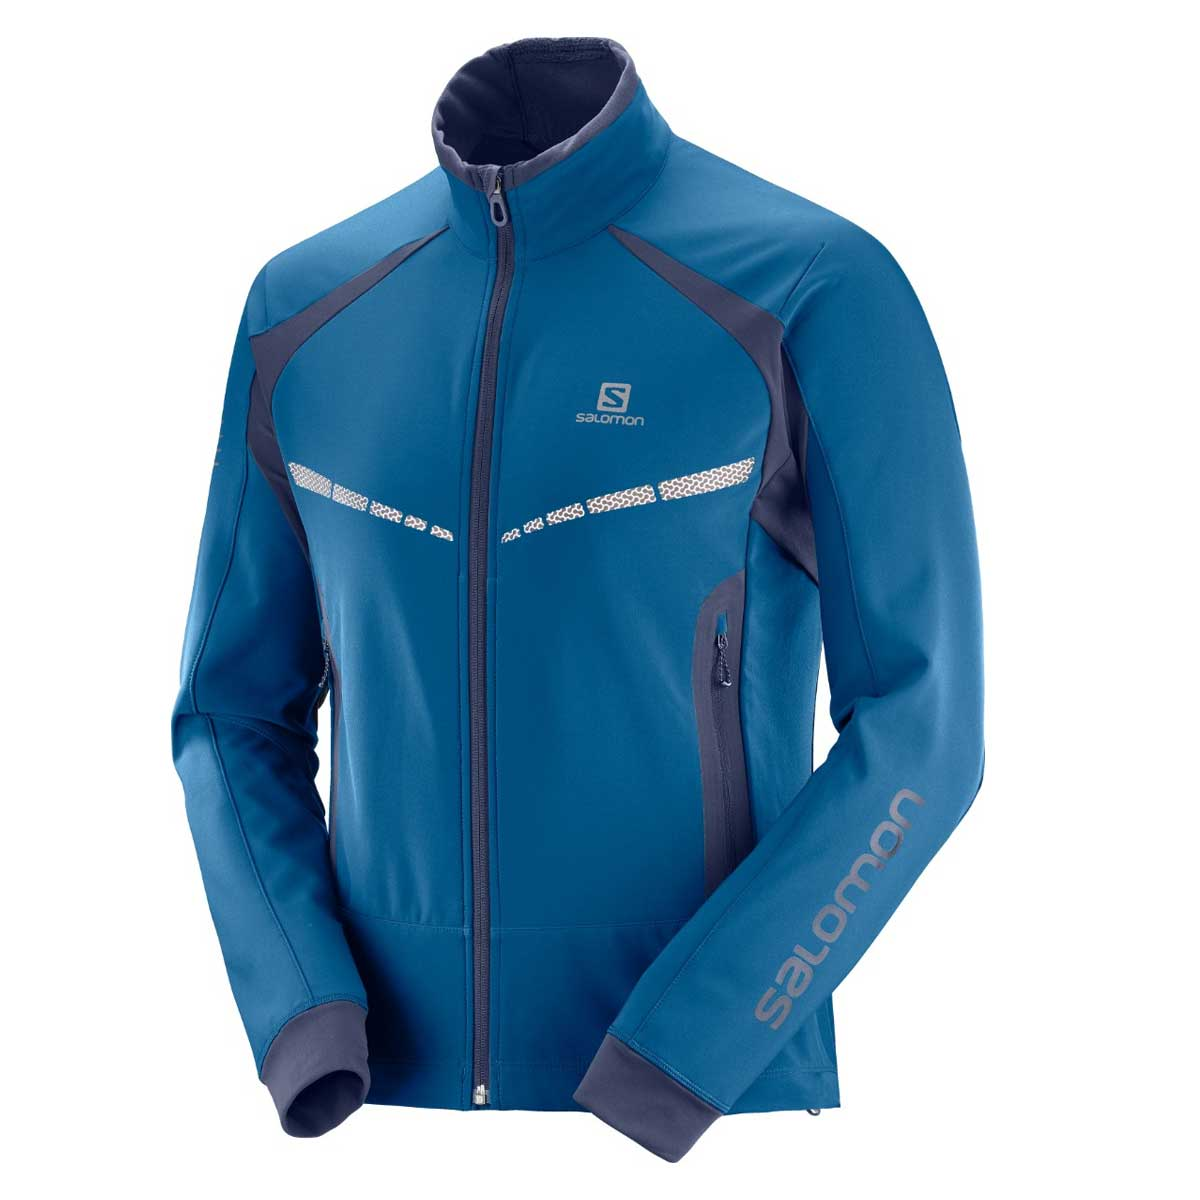 Salomon Men's RS Warm Softshell Jacket in Poseidon and Night Sky